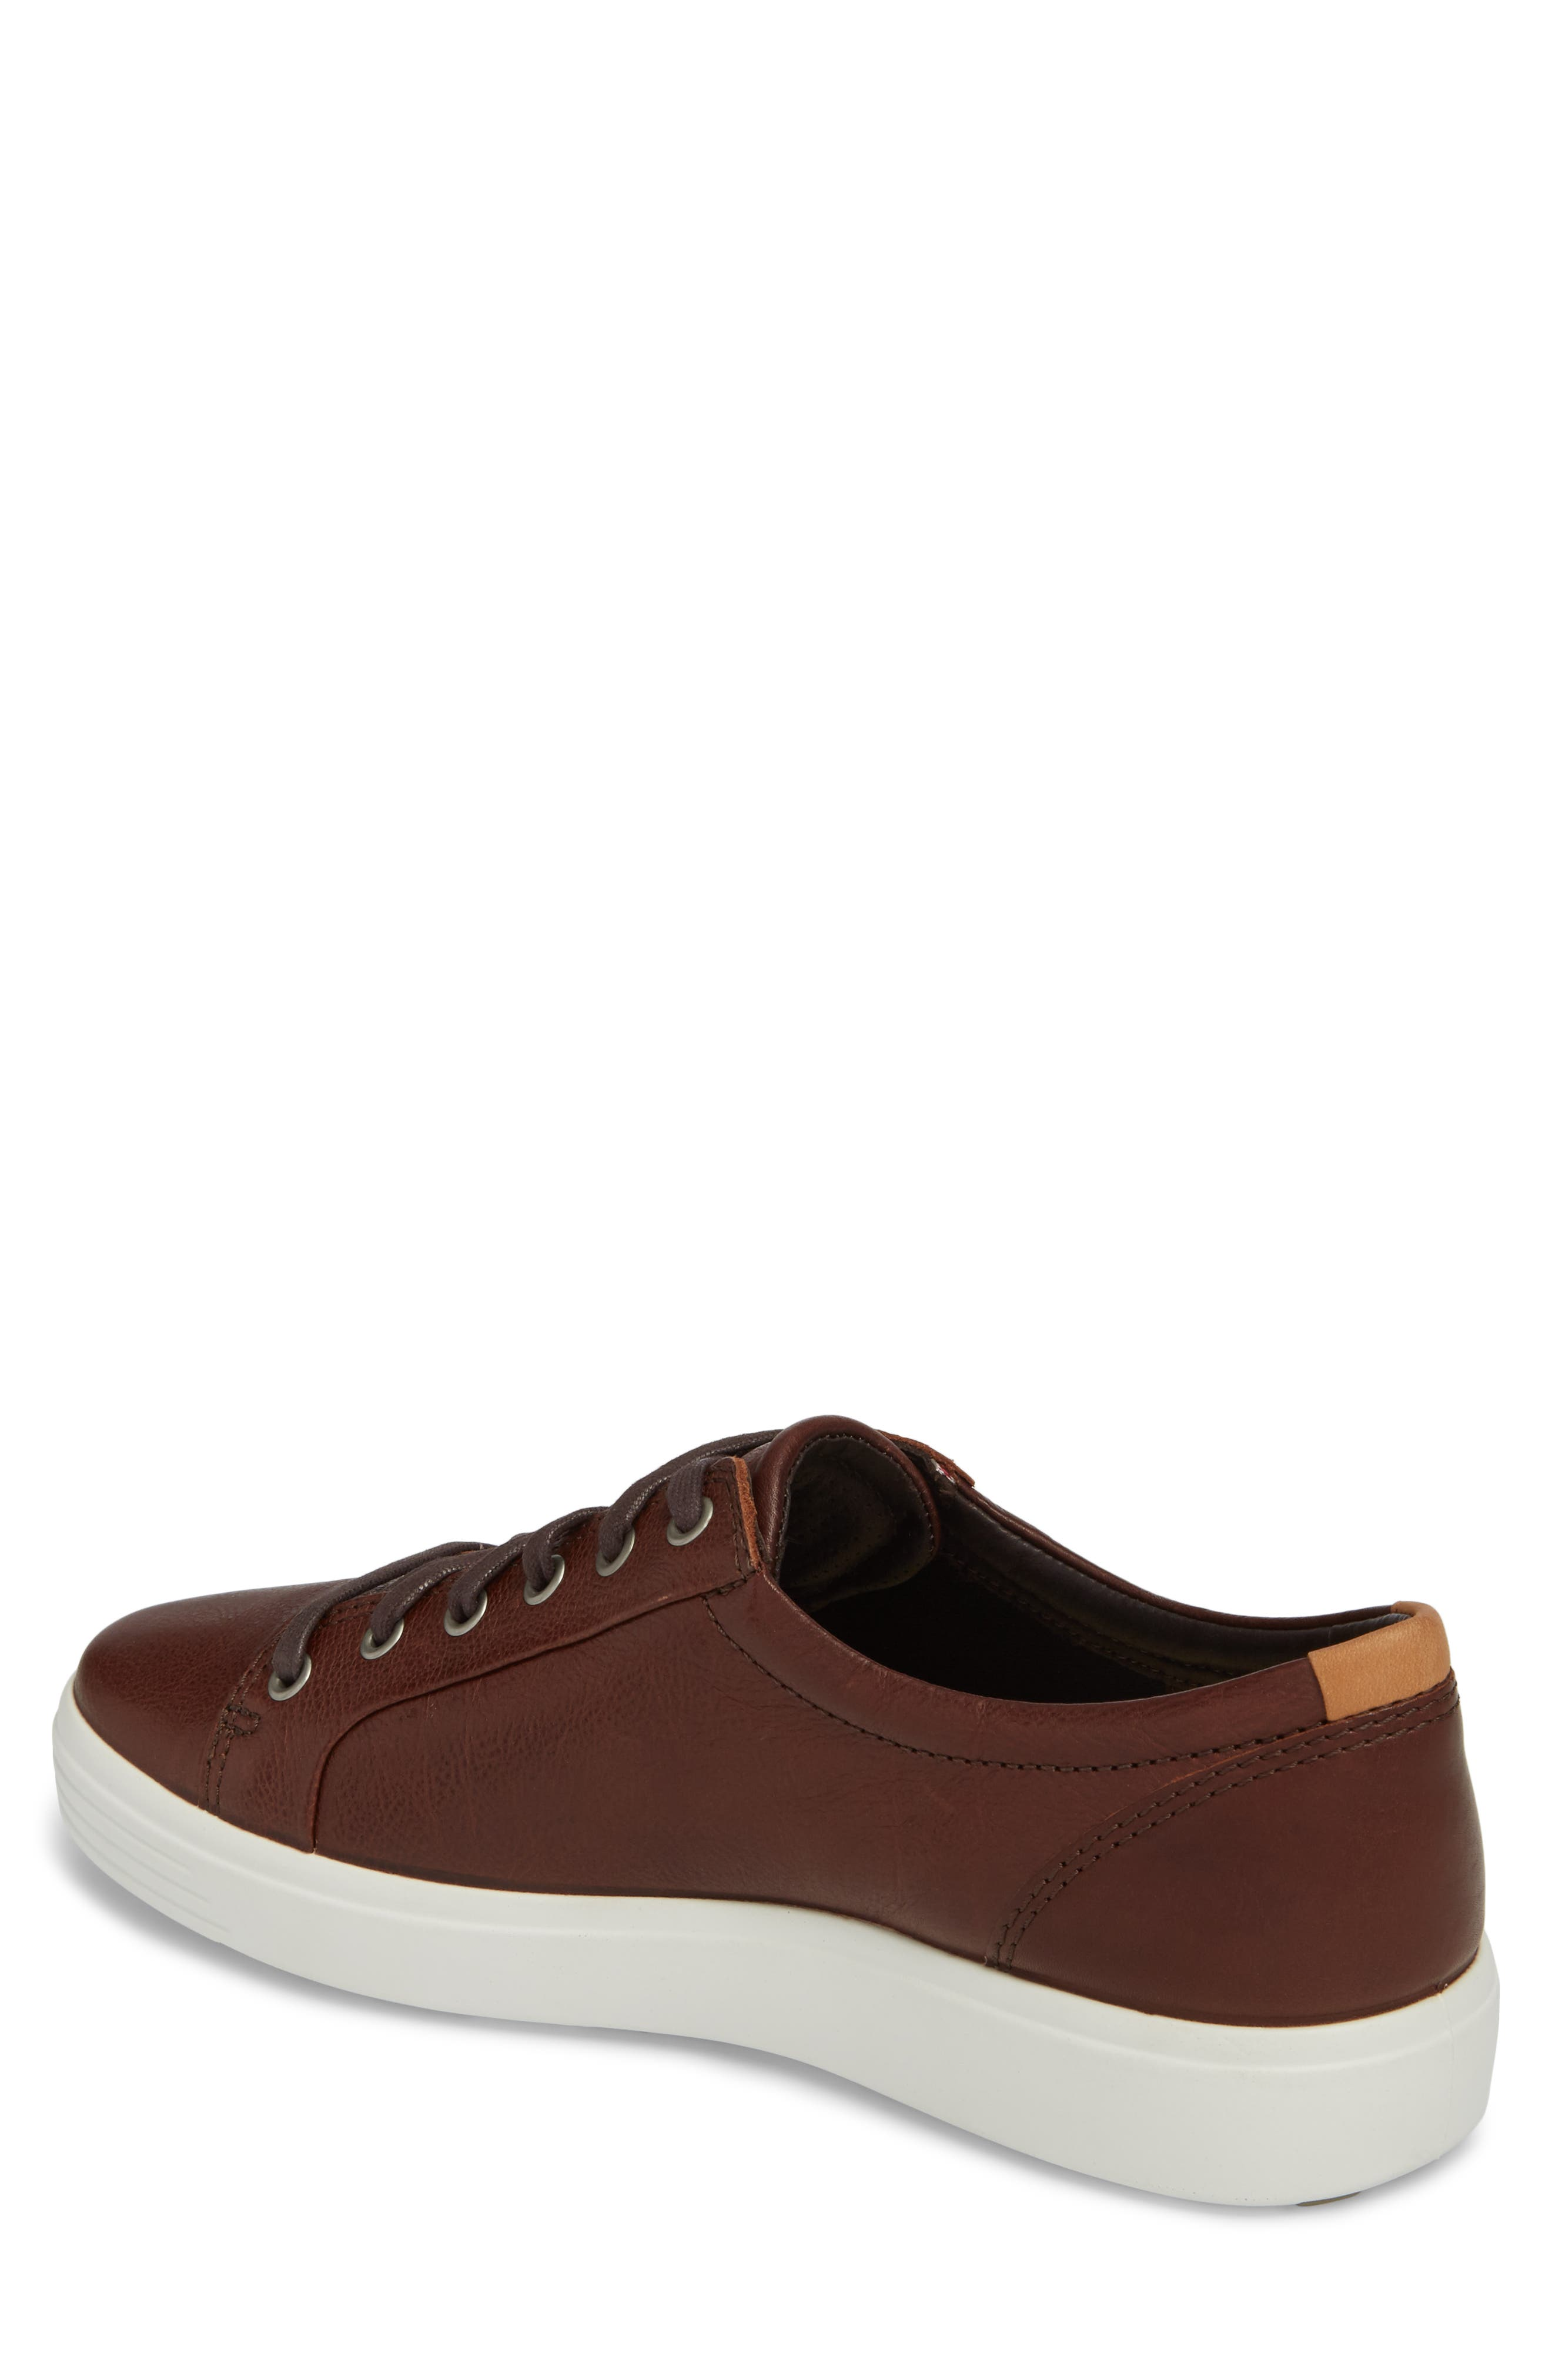 Soft VII Lace-Up Sneaker,                             Alternate thumbnail 25, color,